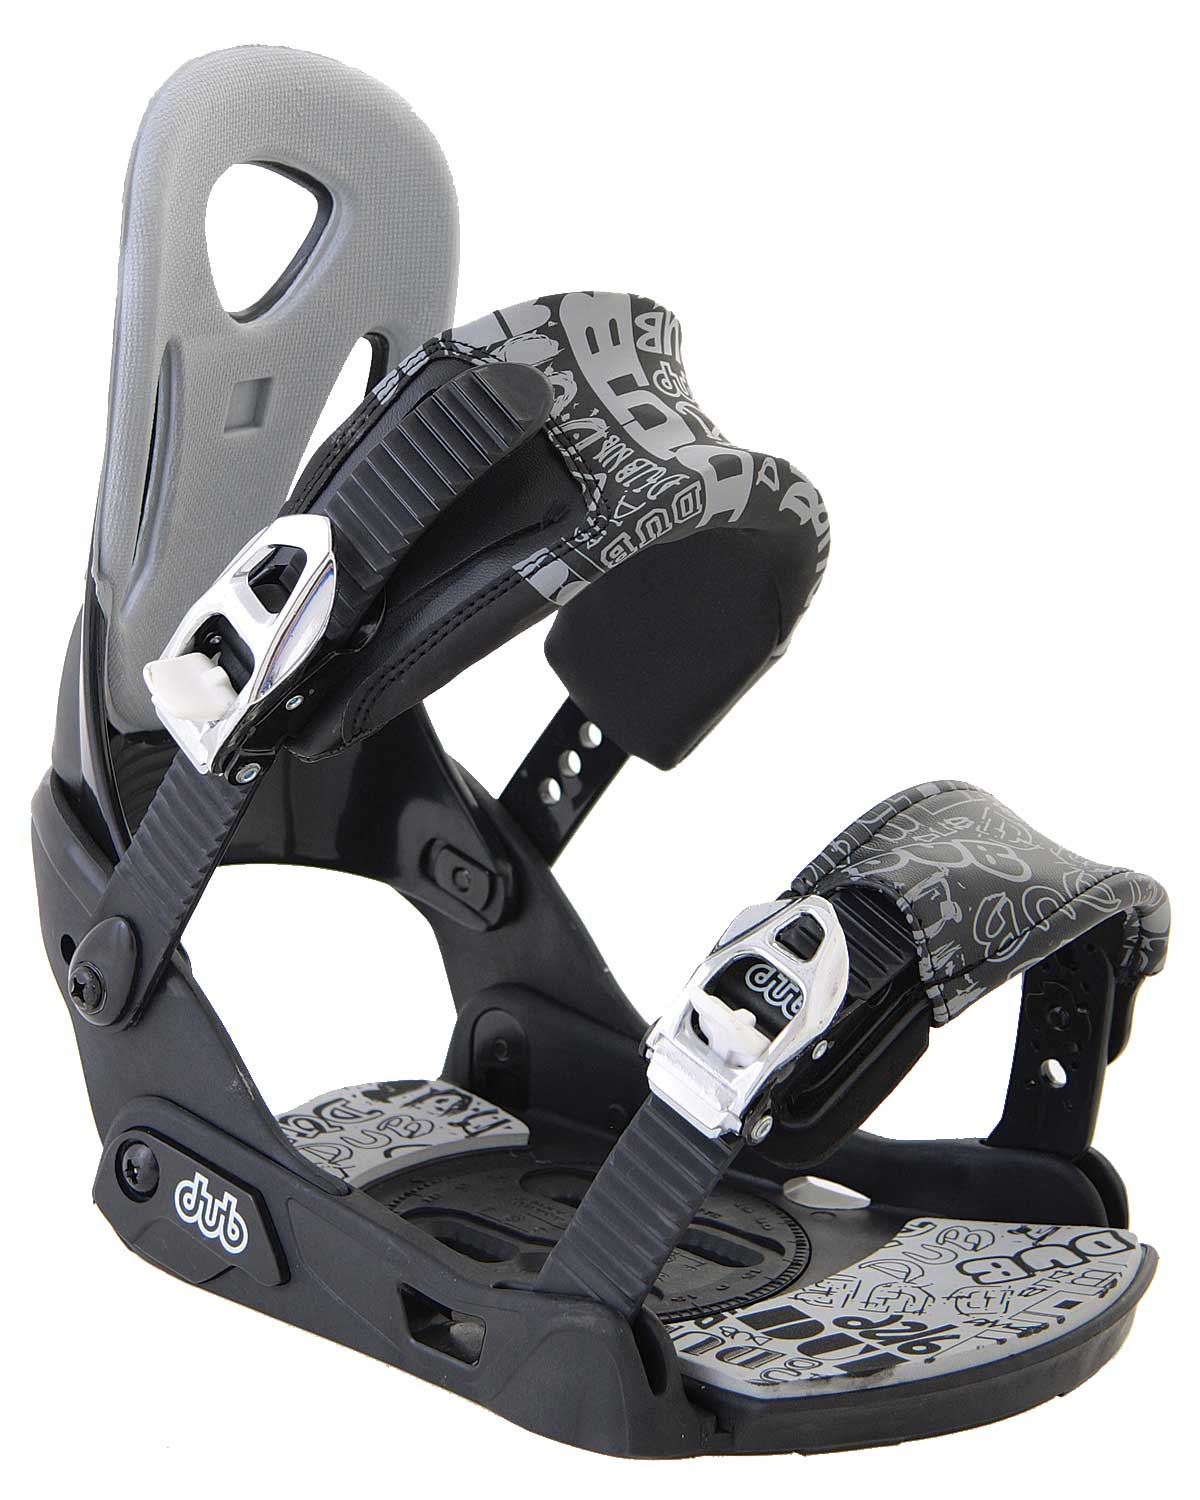 Snowboard The Dub Classic Snowboard Binding has quite a few features built into one great product. It is an all purpose binding. The plastic baseplate and heelcup are backed up by glass reinforcement. The straps are padded for comfort as well as anatomically pre-curved. The straps also feature several tool-free settings for quick adjustment to get you on your way faster. As well as a tool-free forward lean high-back which has an over-molded EVA padding that is thermo-formed.Key Features of the Dub Classic Snowboard Bindings: All Purpose Adult Binding Plastic Heelcup And Baseplate With Glass Reinforcement Anatomical Pre-Curved And Padded Comfort Strap With Multiple Tool-Free Settings Anatomical Alloy Ratchets Tool-Free Forward Lean Anatomical Highback With Over-Molded, Thermo-Formed EVA Padding - $65.95